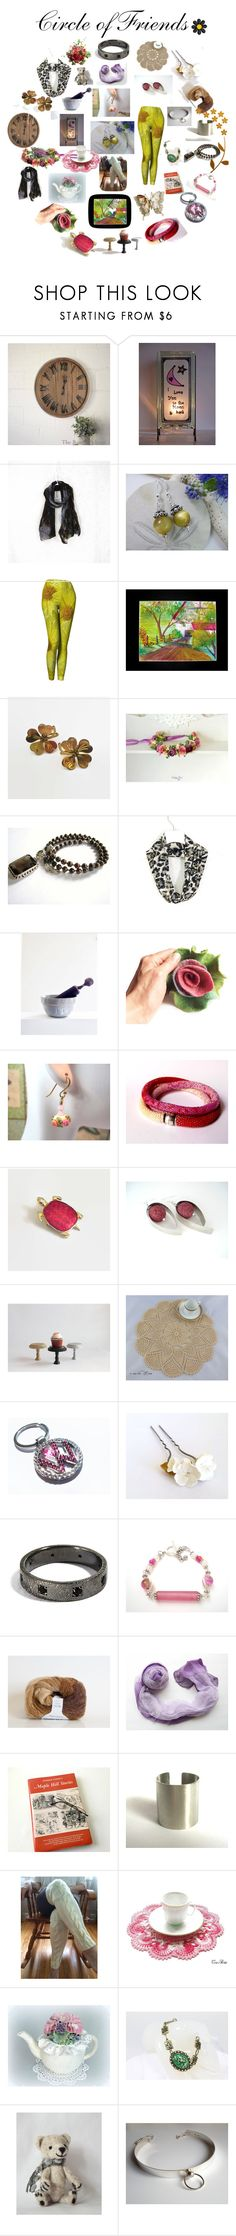 """Circle of Friends"" by therusticpelican ❤ liked on Polyvore featuring CAVO, modern, contemporary, rustic and vintage"